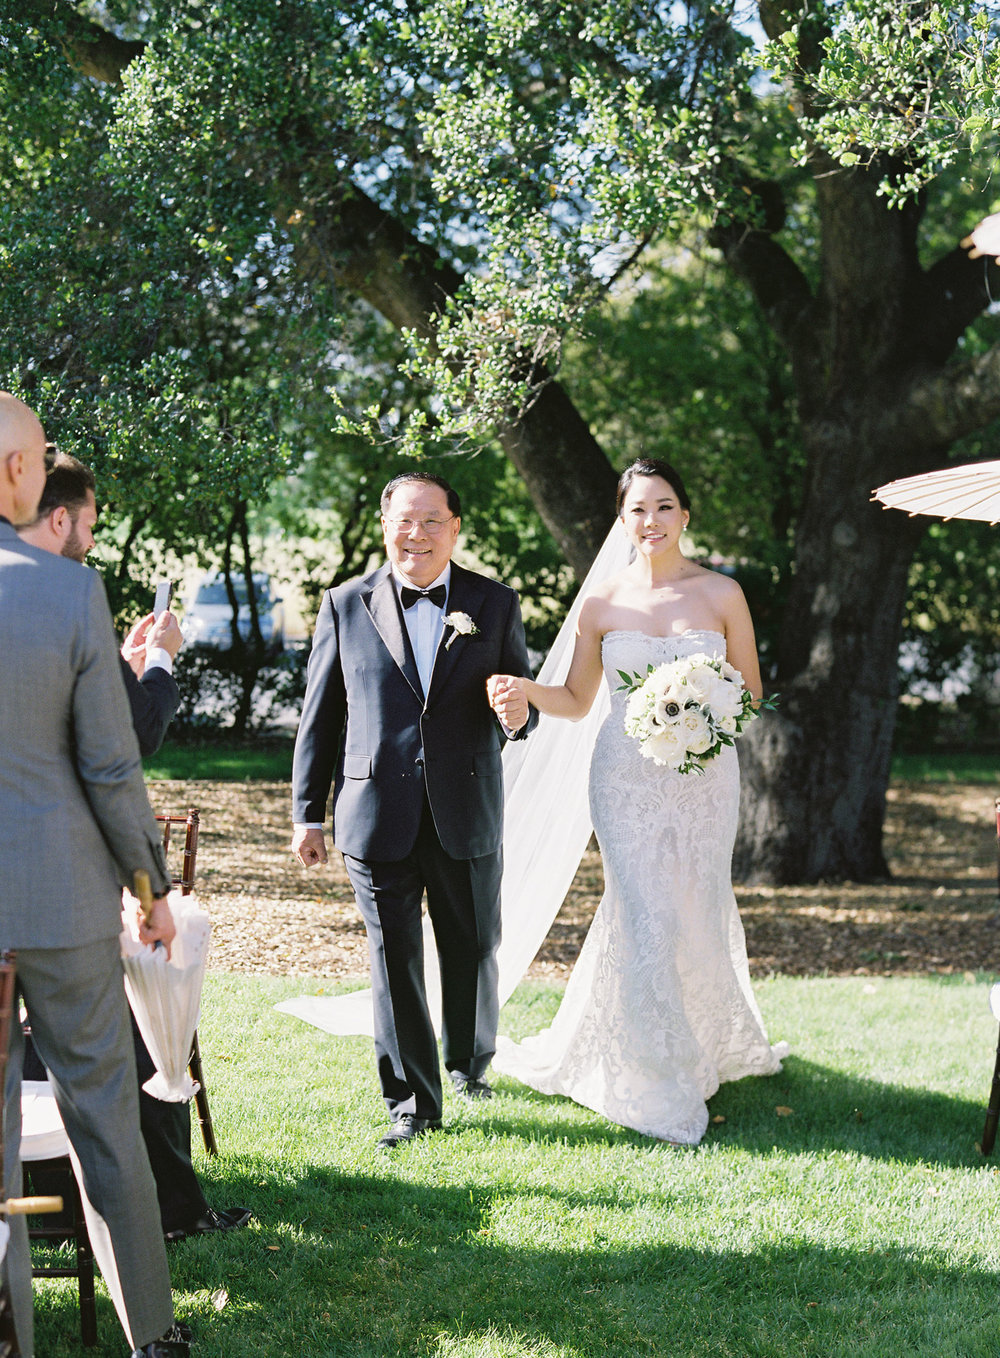 Meghan Mehan Photography - Sonoma Golf Club Wedding - California Film Wedding Photographer - 037.jpg